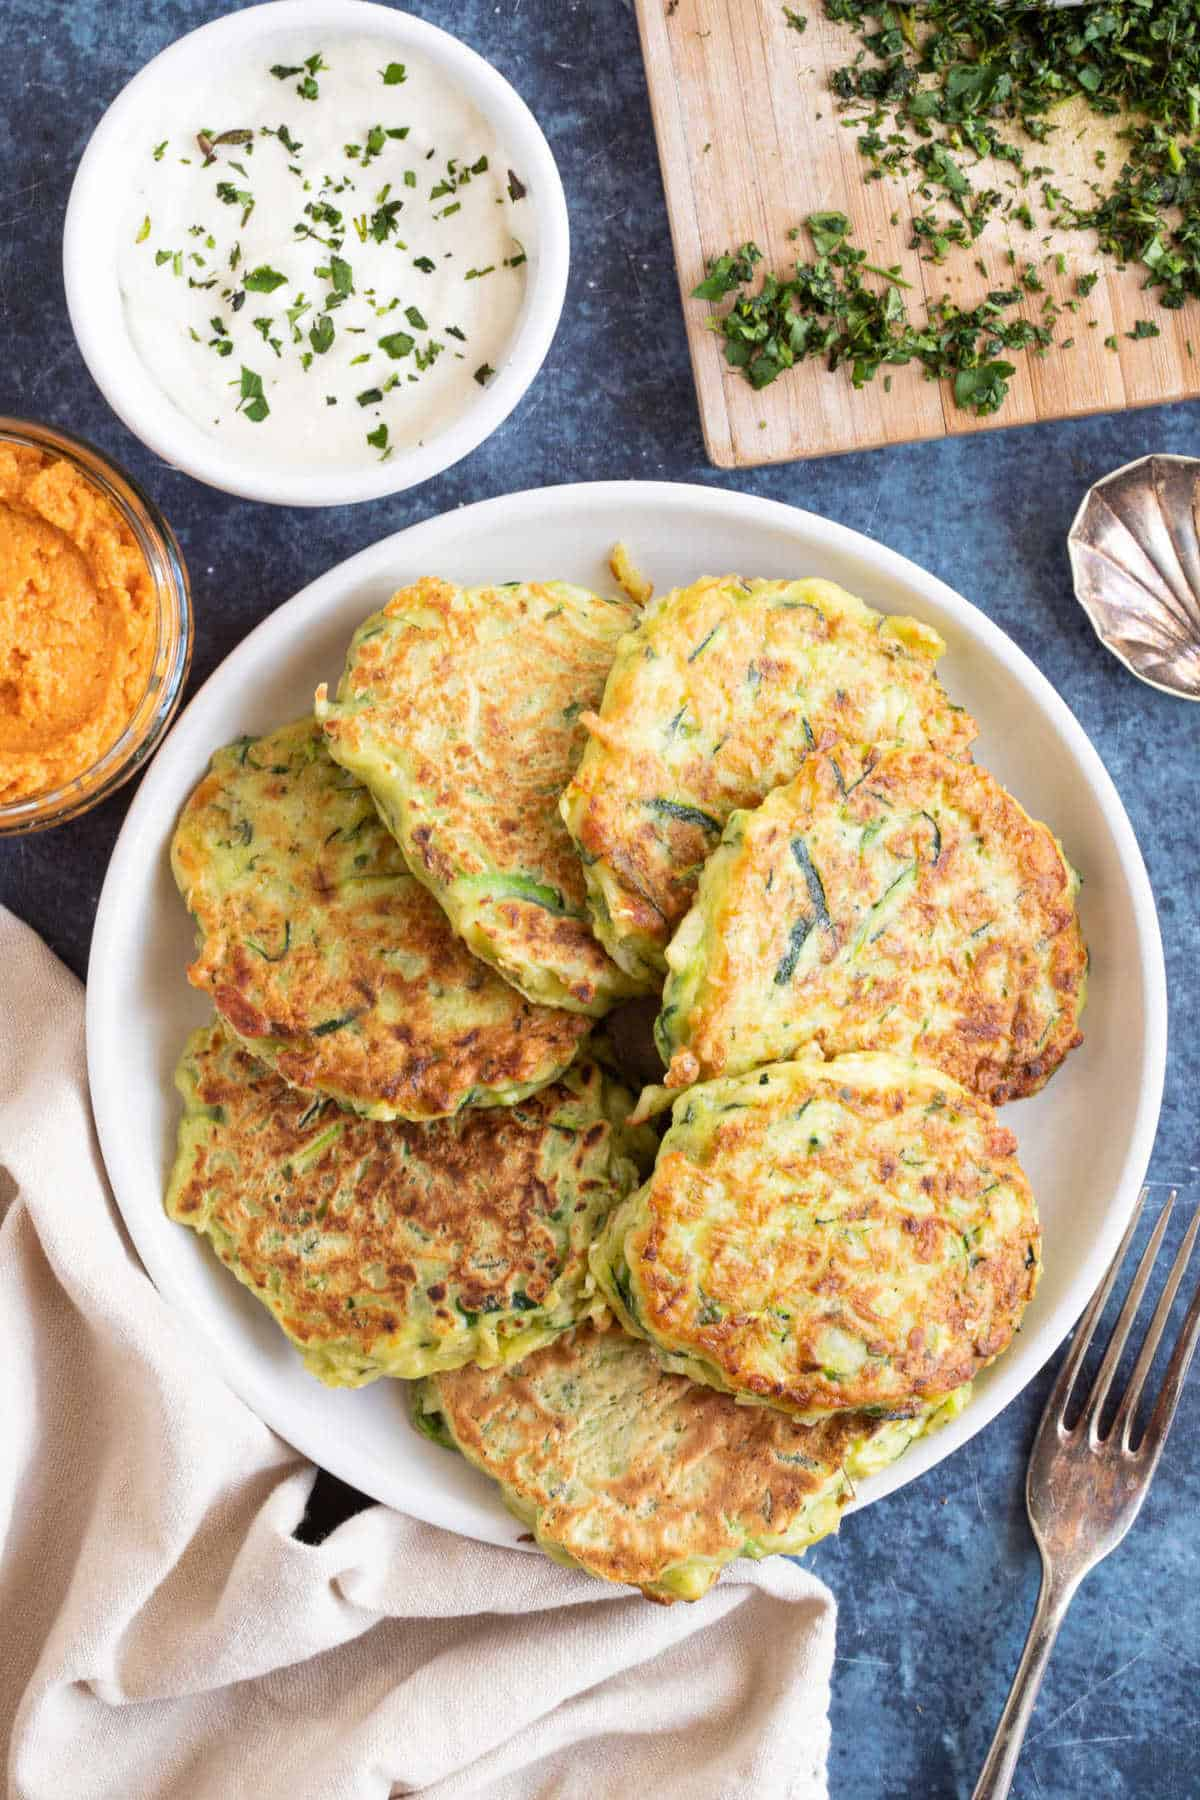 A plate of courgette and halloumi fritters.